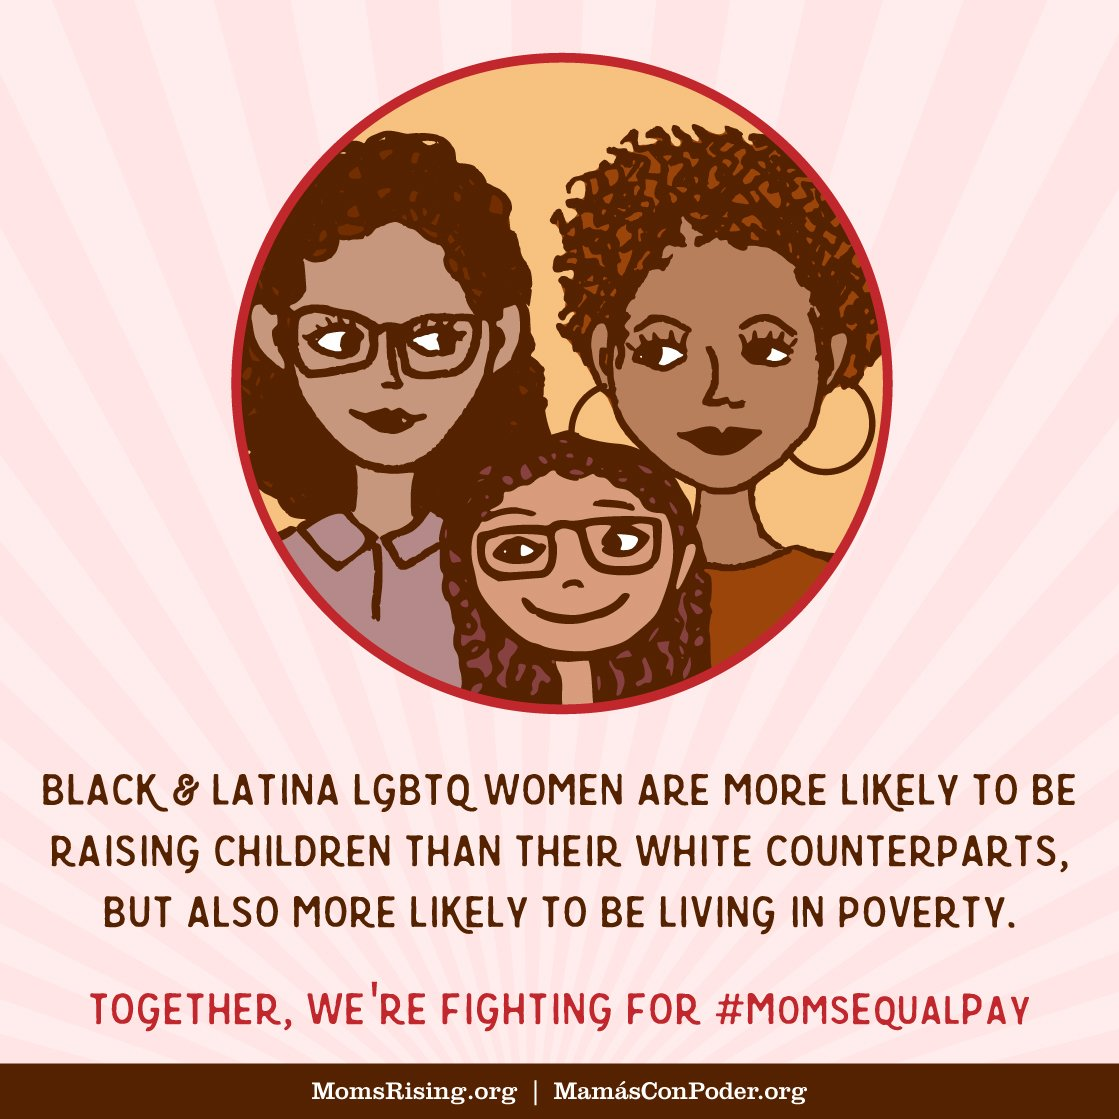 It's outrageous that today, 11 months and 20 days into the year, is the day Latinas' average pay catches up to what white, non-Hispanic men made LAST YEAR. We need #EqualPayForEqualWork! #LatinaEqualPayDay